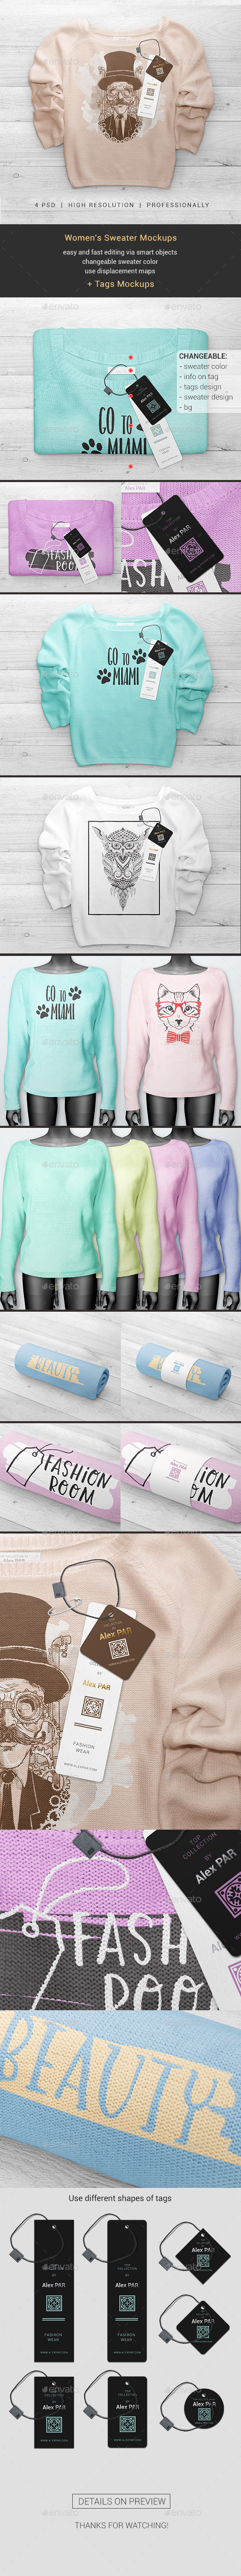 Women's Sweater Mockups - Miscellaneous Apparel